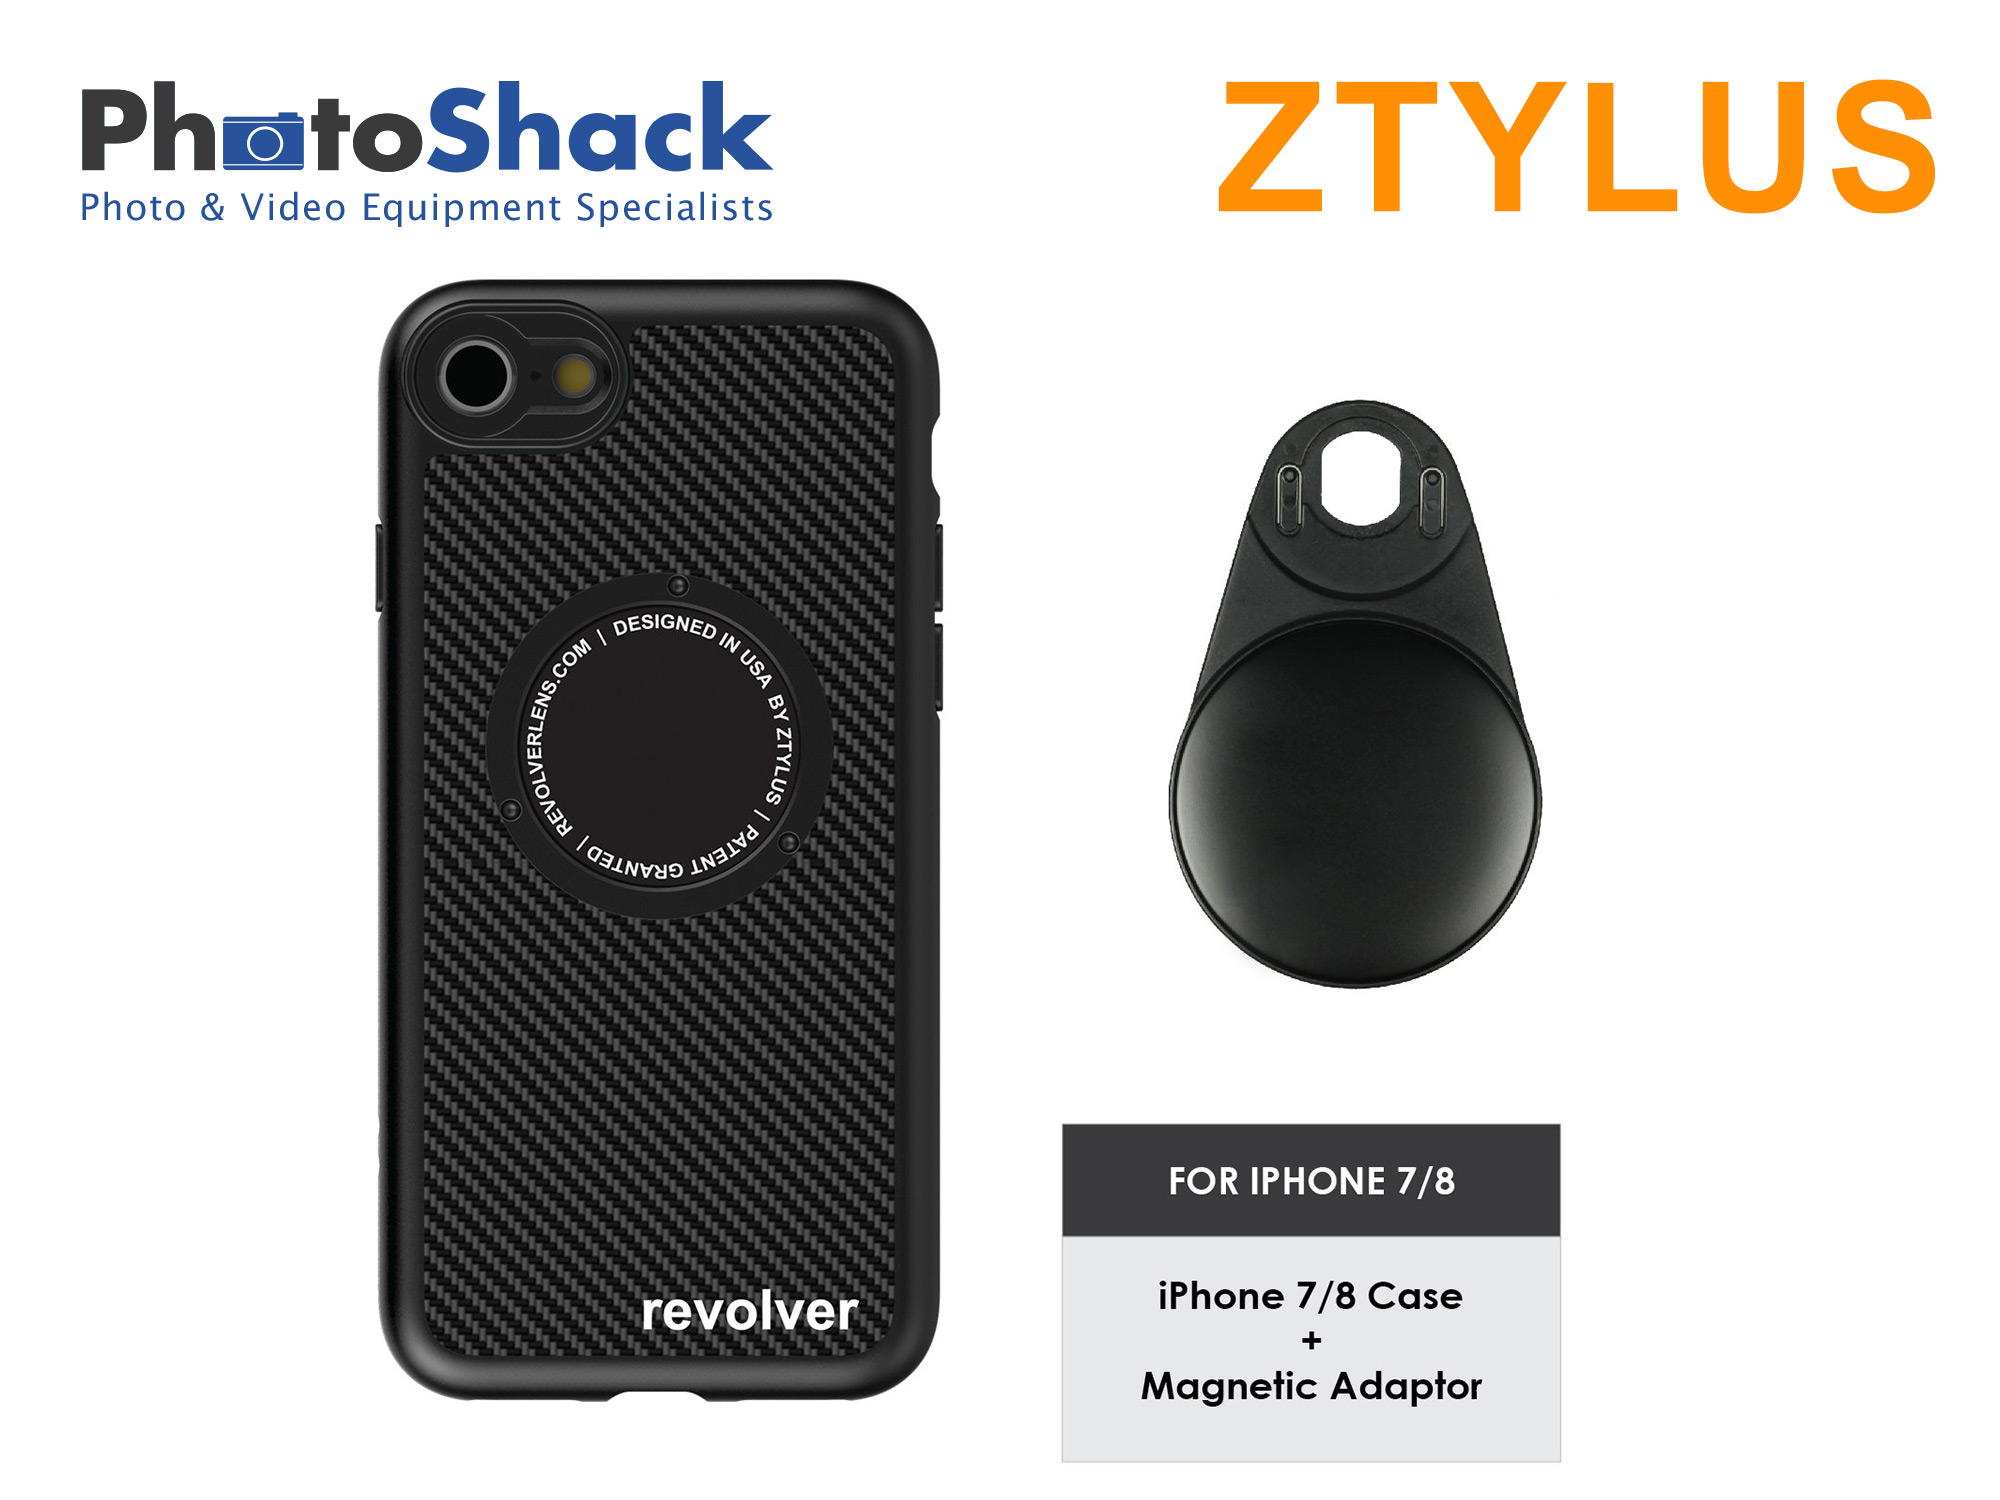 Ztylus iPhone Case for iPhone 7 / 8 and Magnetic Adapter